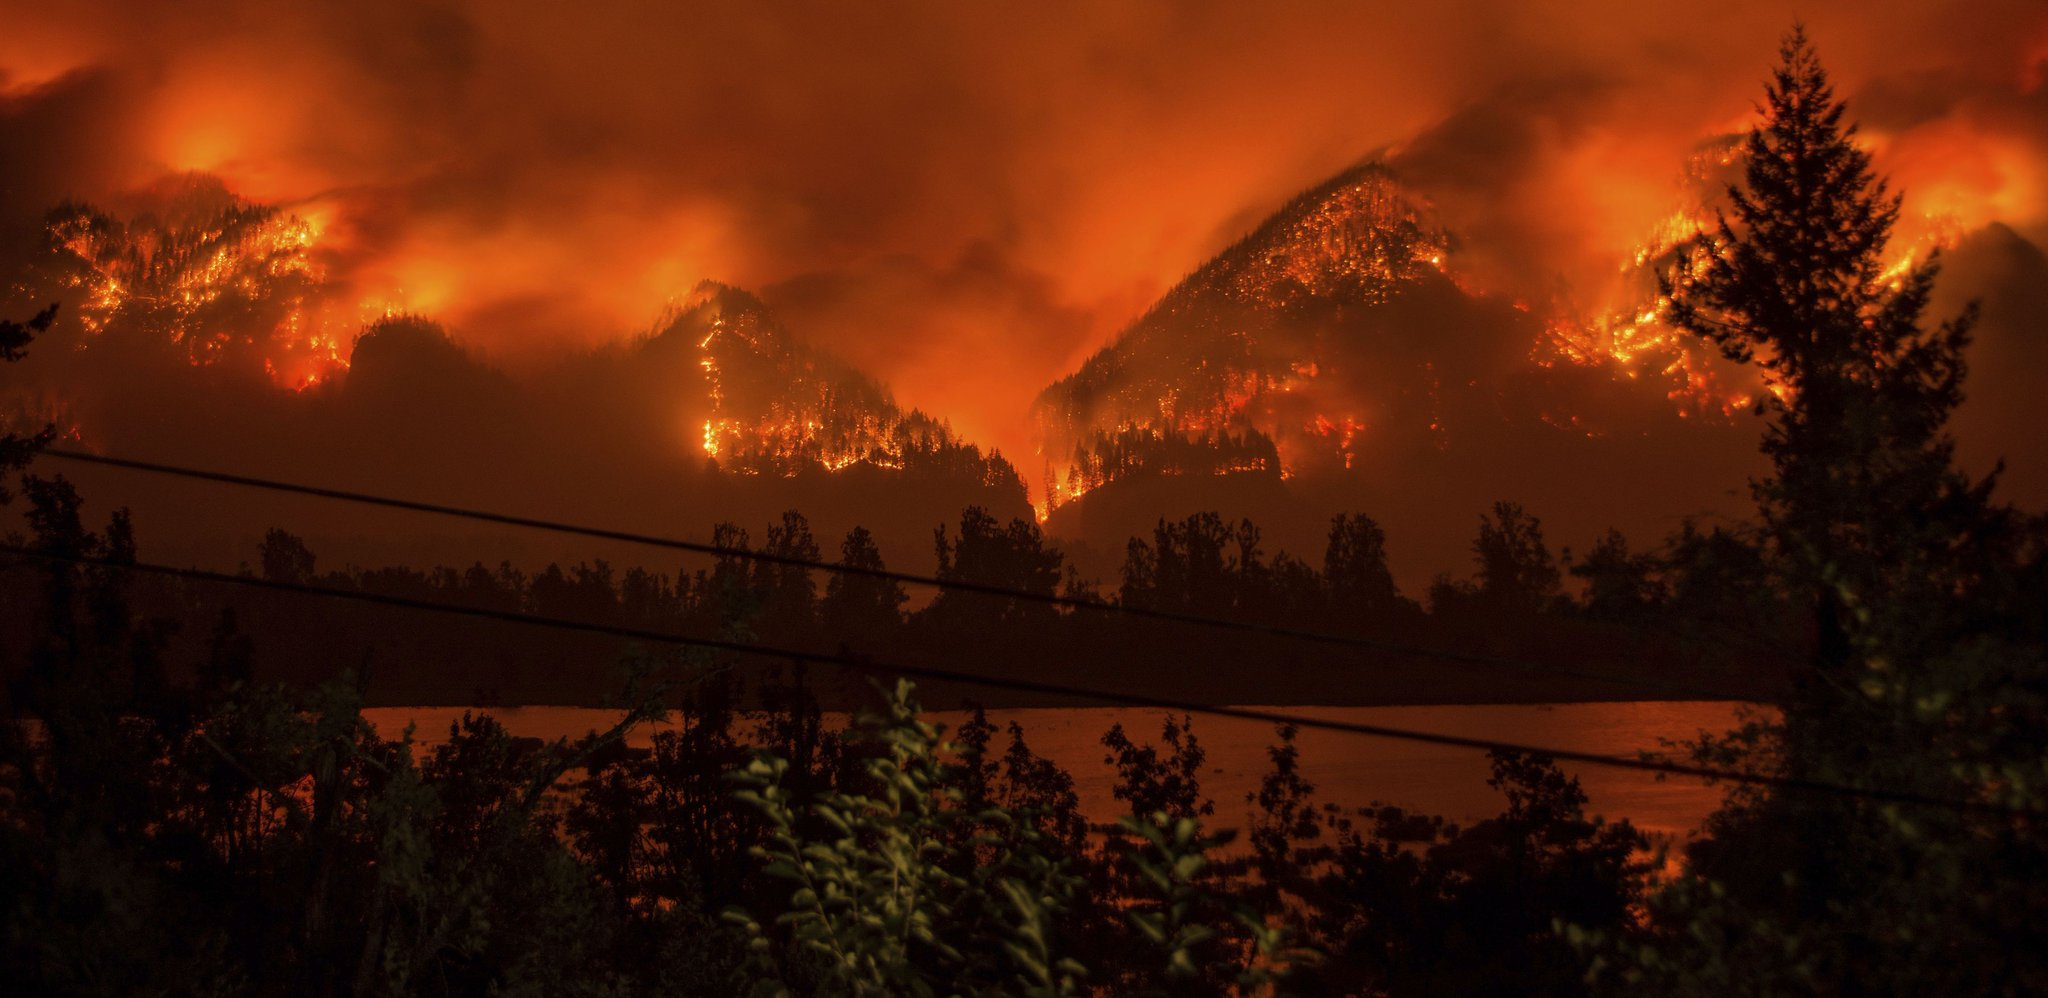 Judge: Teen must repay $37,000,000 for starting Oregon wildfire https://t.co/mCZTI4rItq https://t.co/FKeNigjFrF